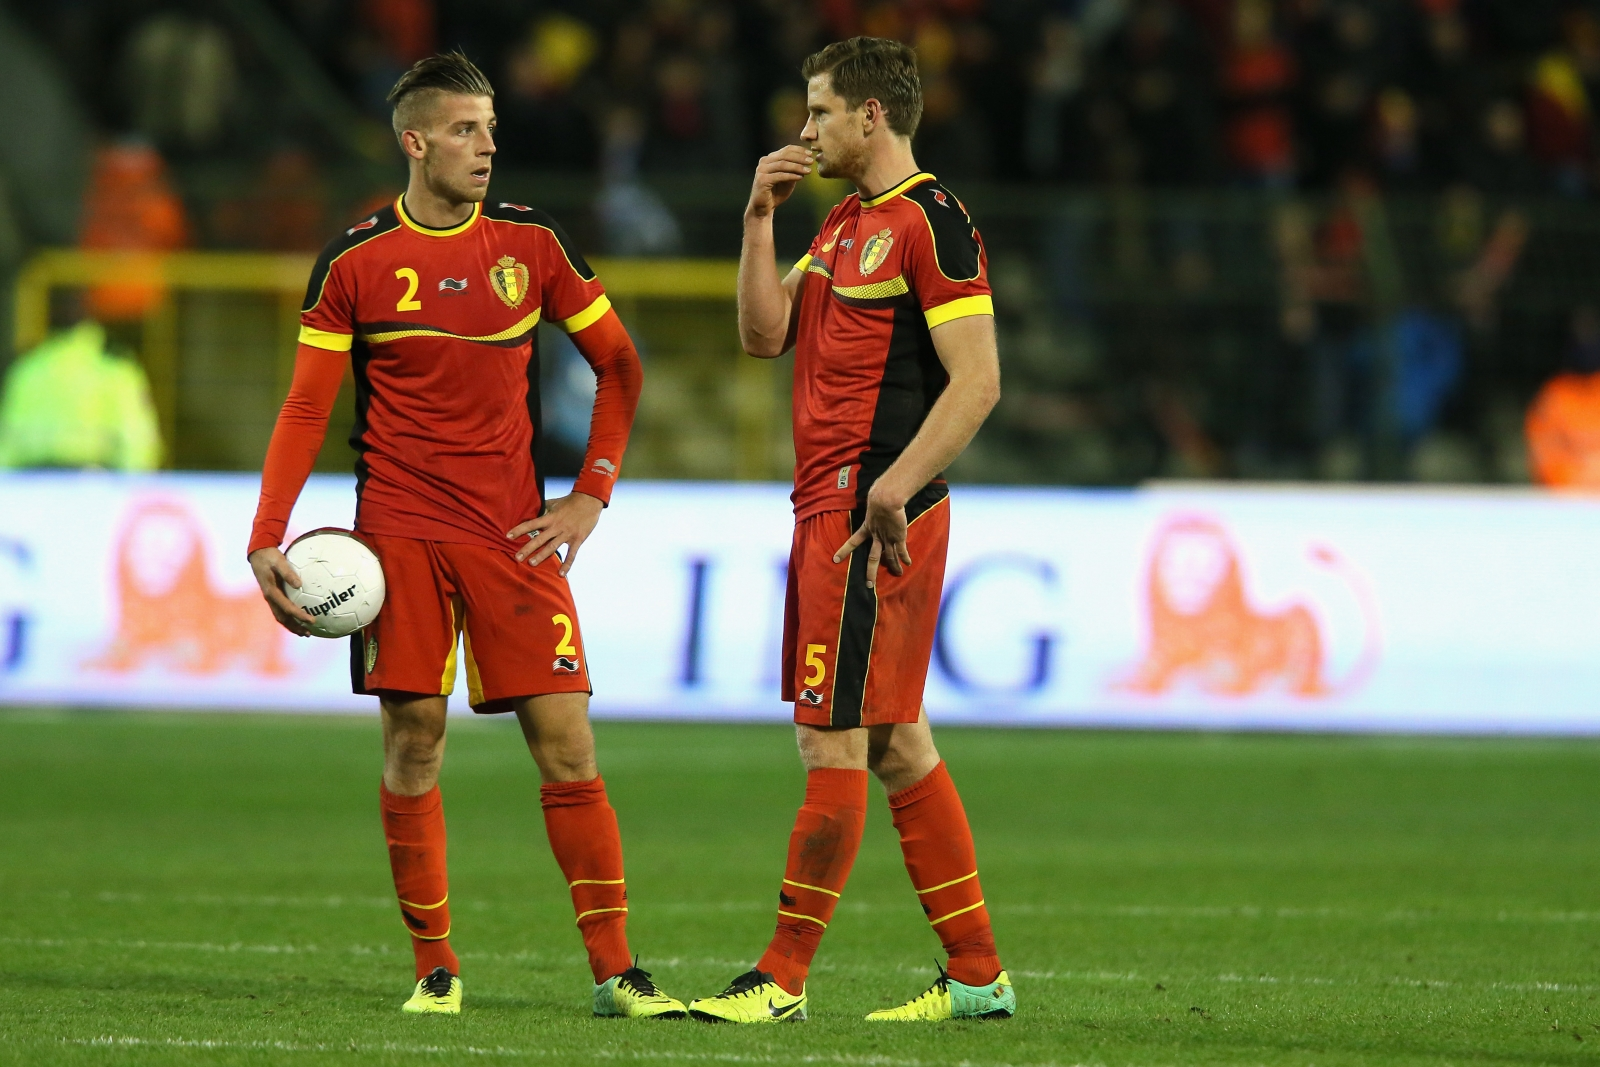 Vertonghen and Alderweireld